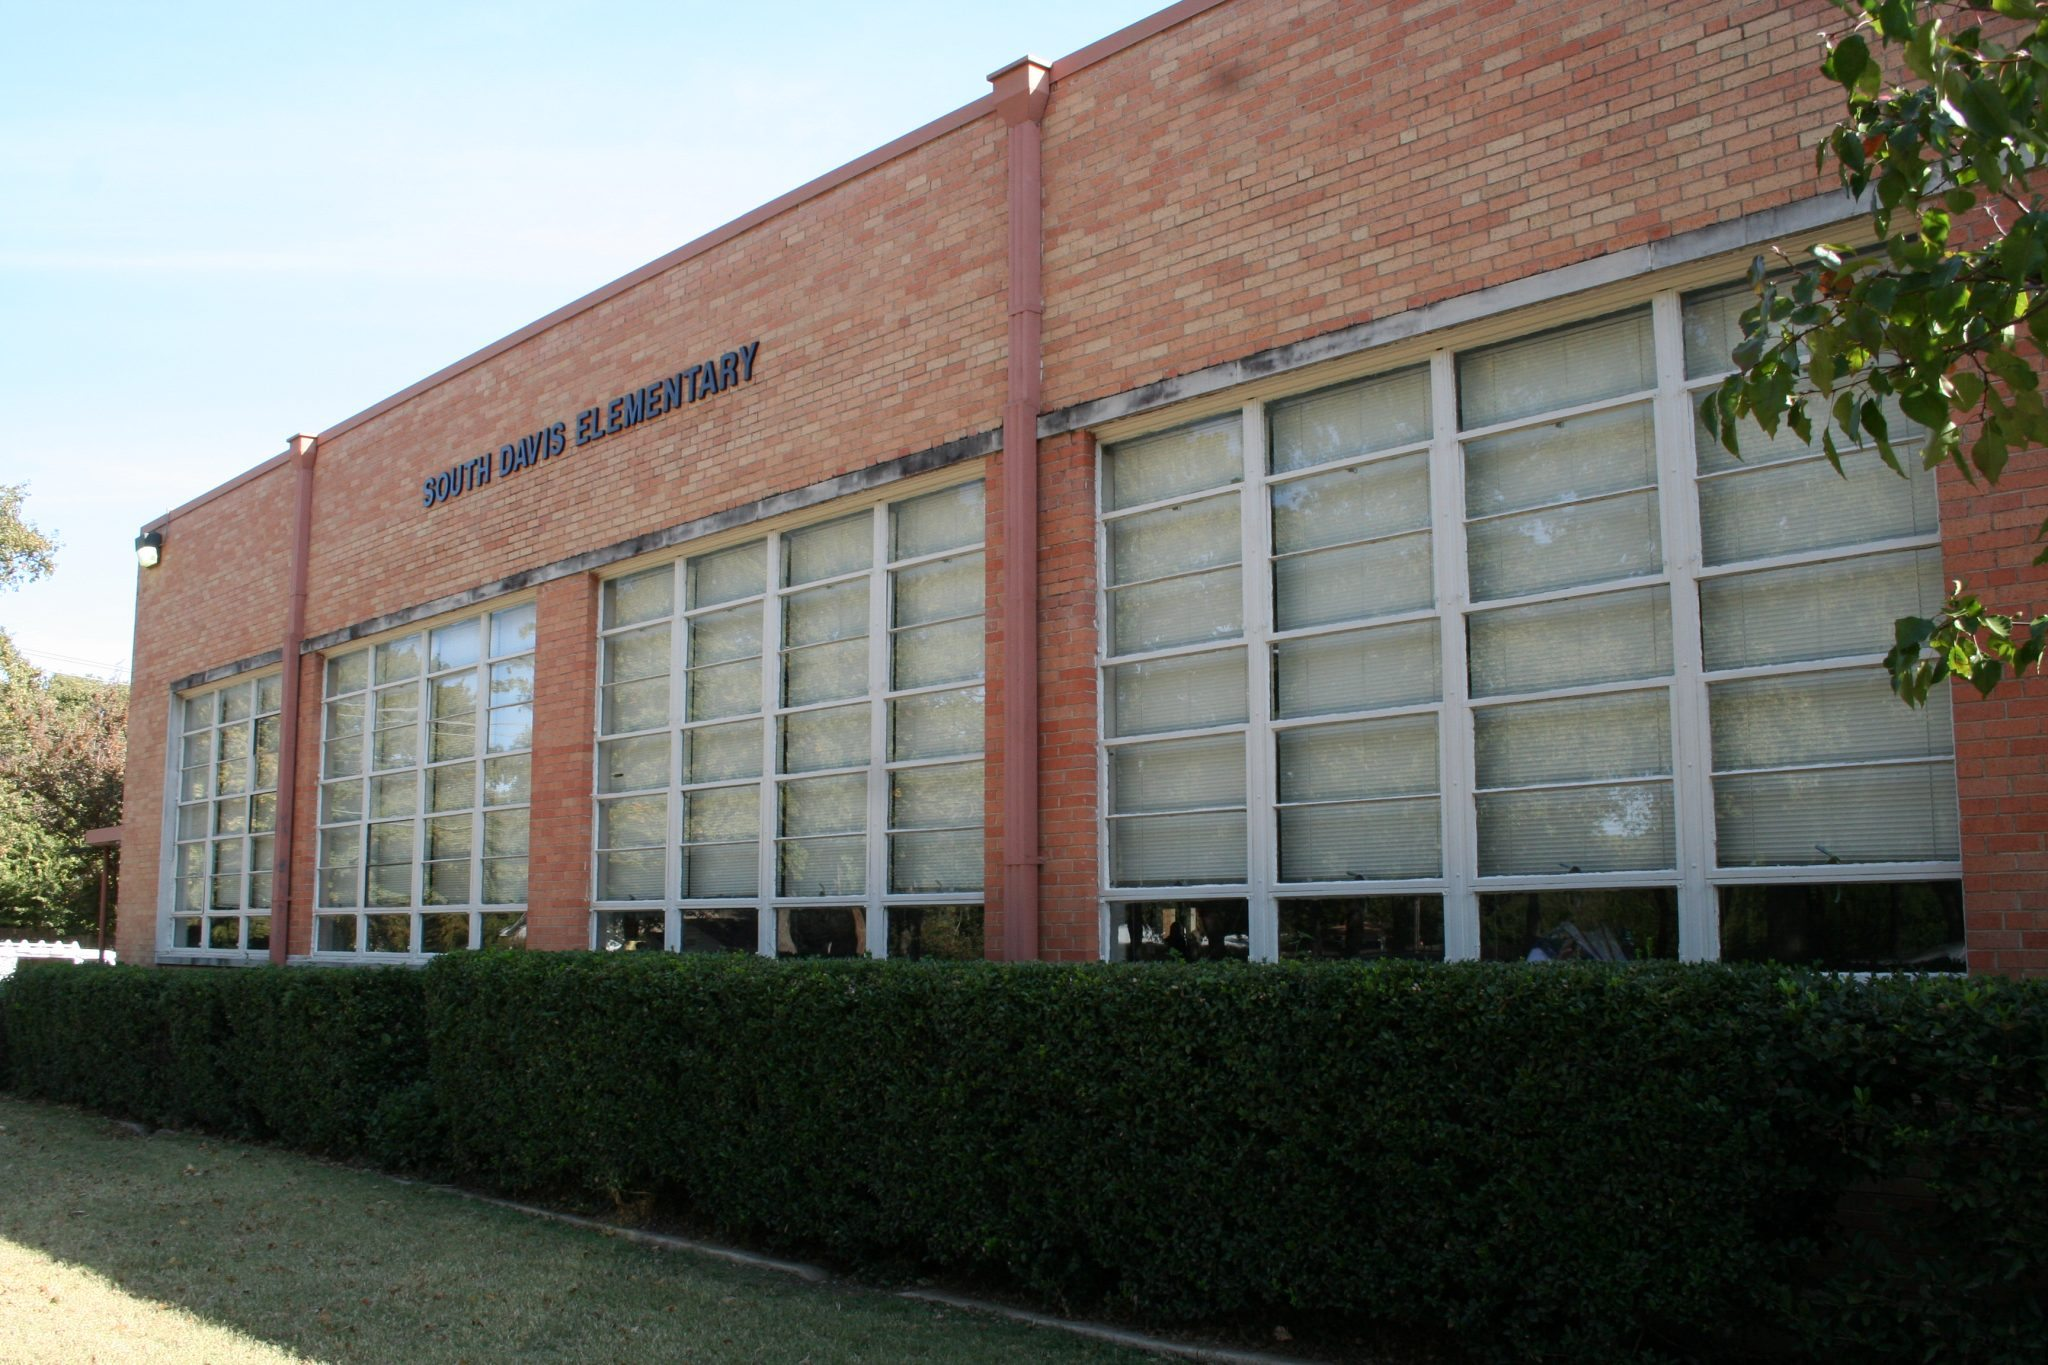 South Davis Elementary Building